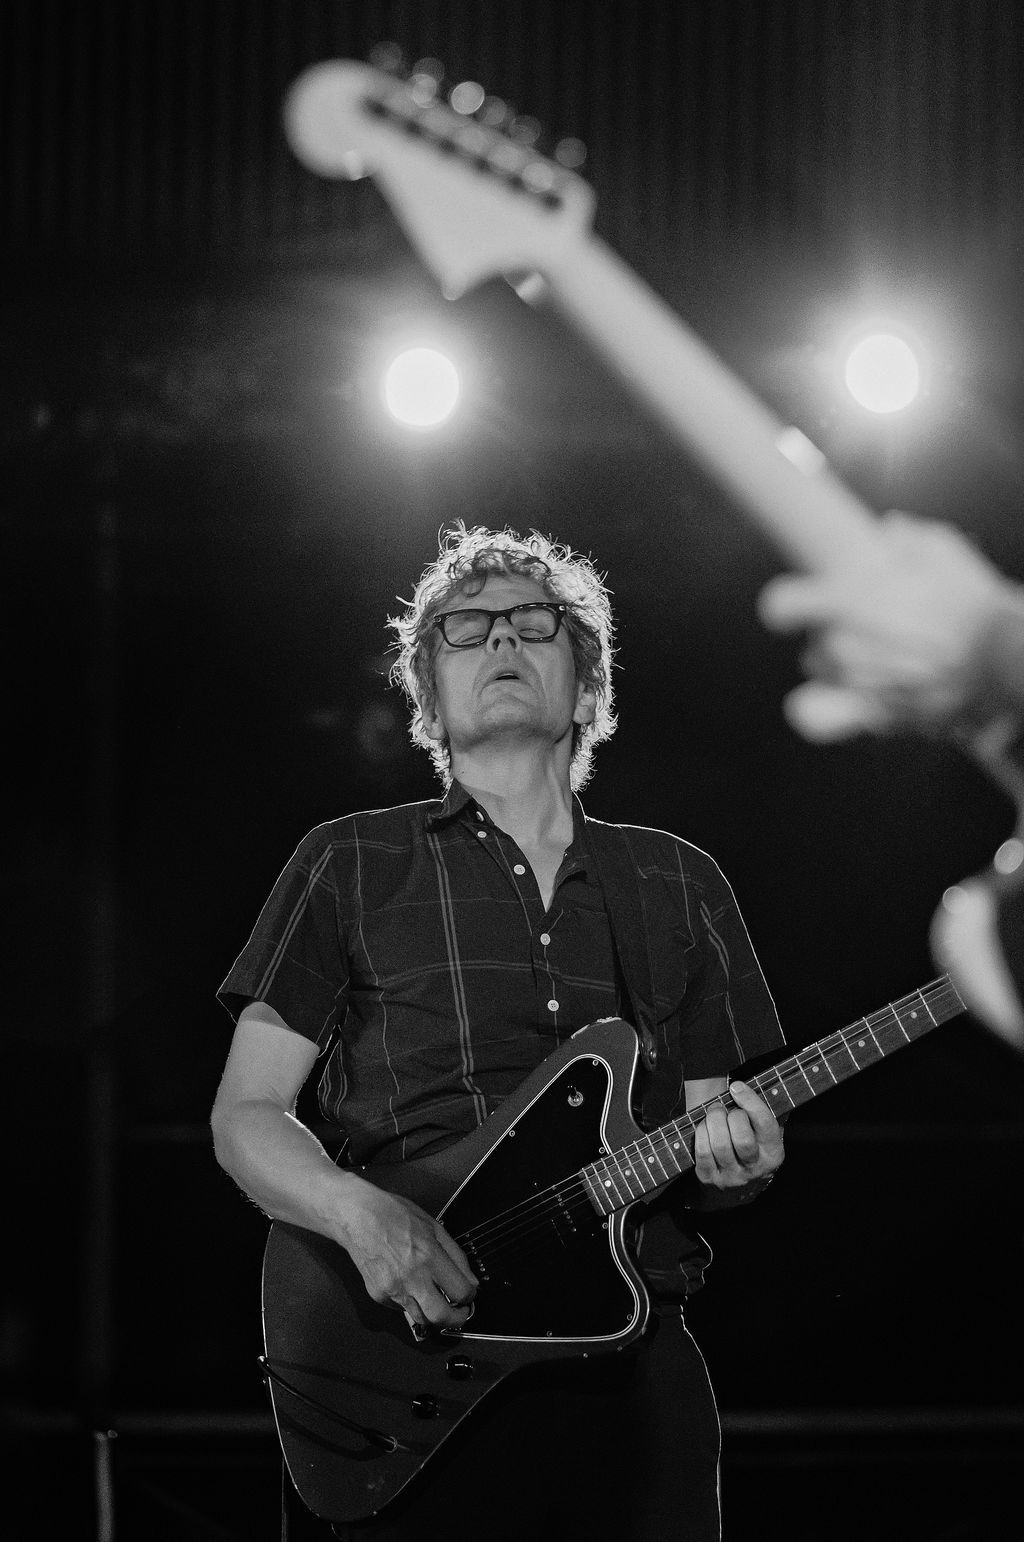 Dean Wareham of Luna (photo: Thomas Barrasso)